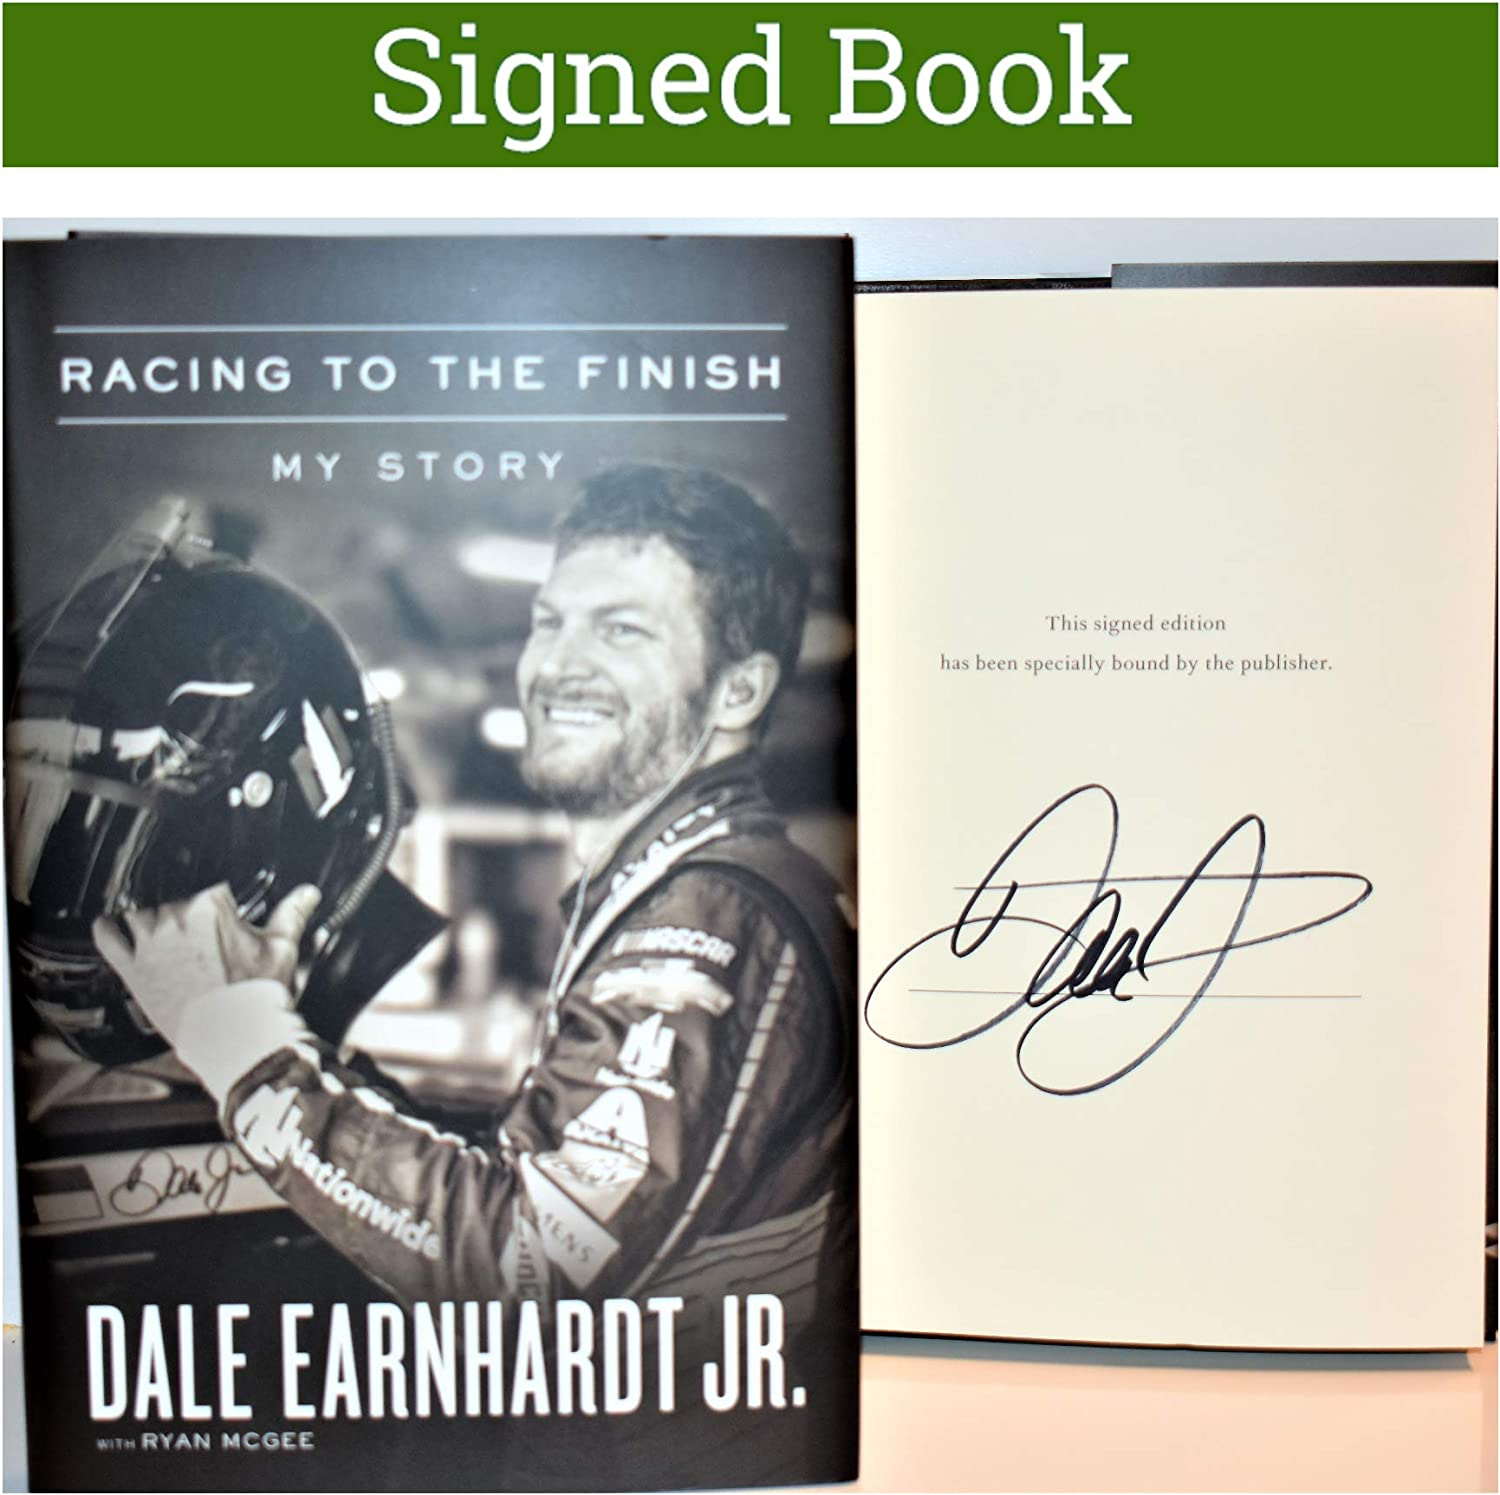 Racing to the Finish AUTOGRAPHED Dale Earnhardt Jr SIGNED BOOK COA 71tDqukbZGLSL1500_